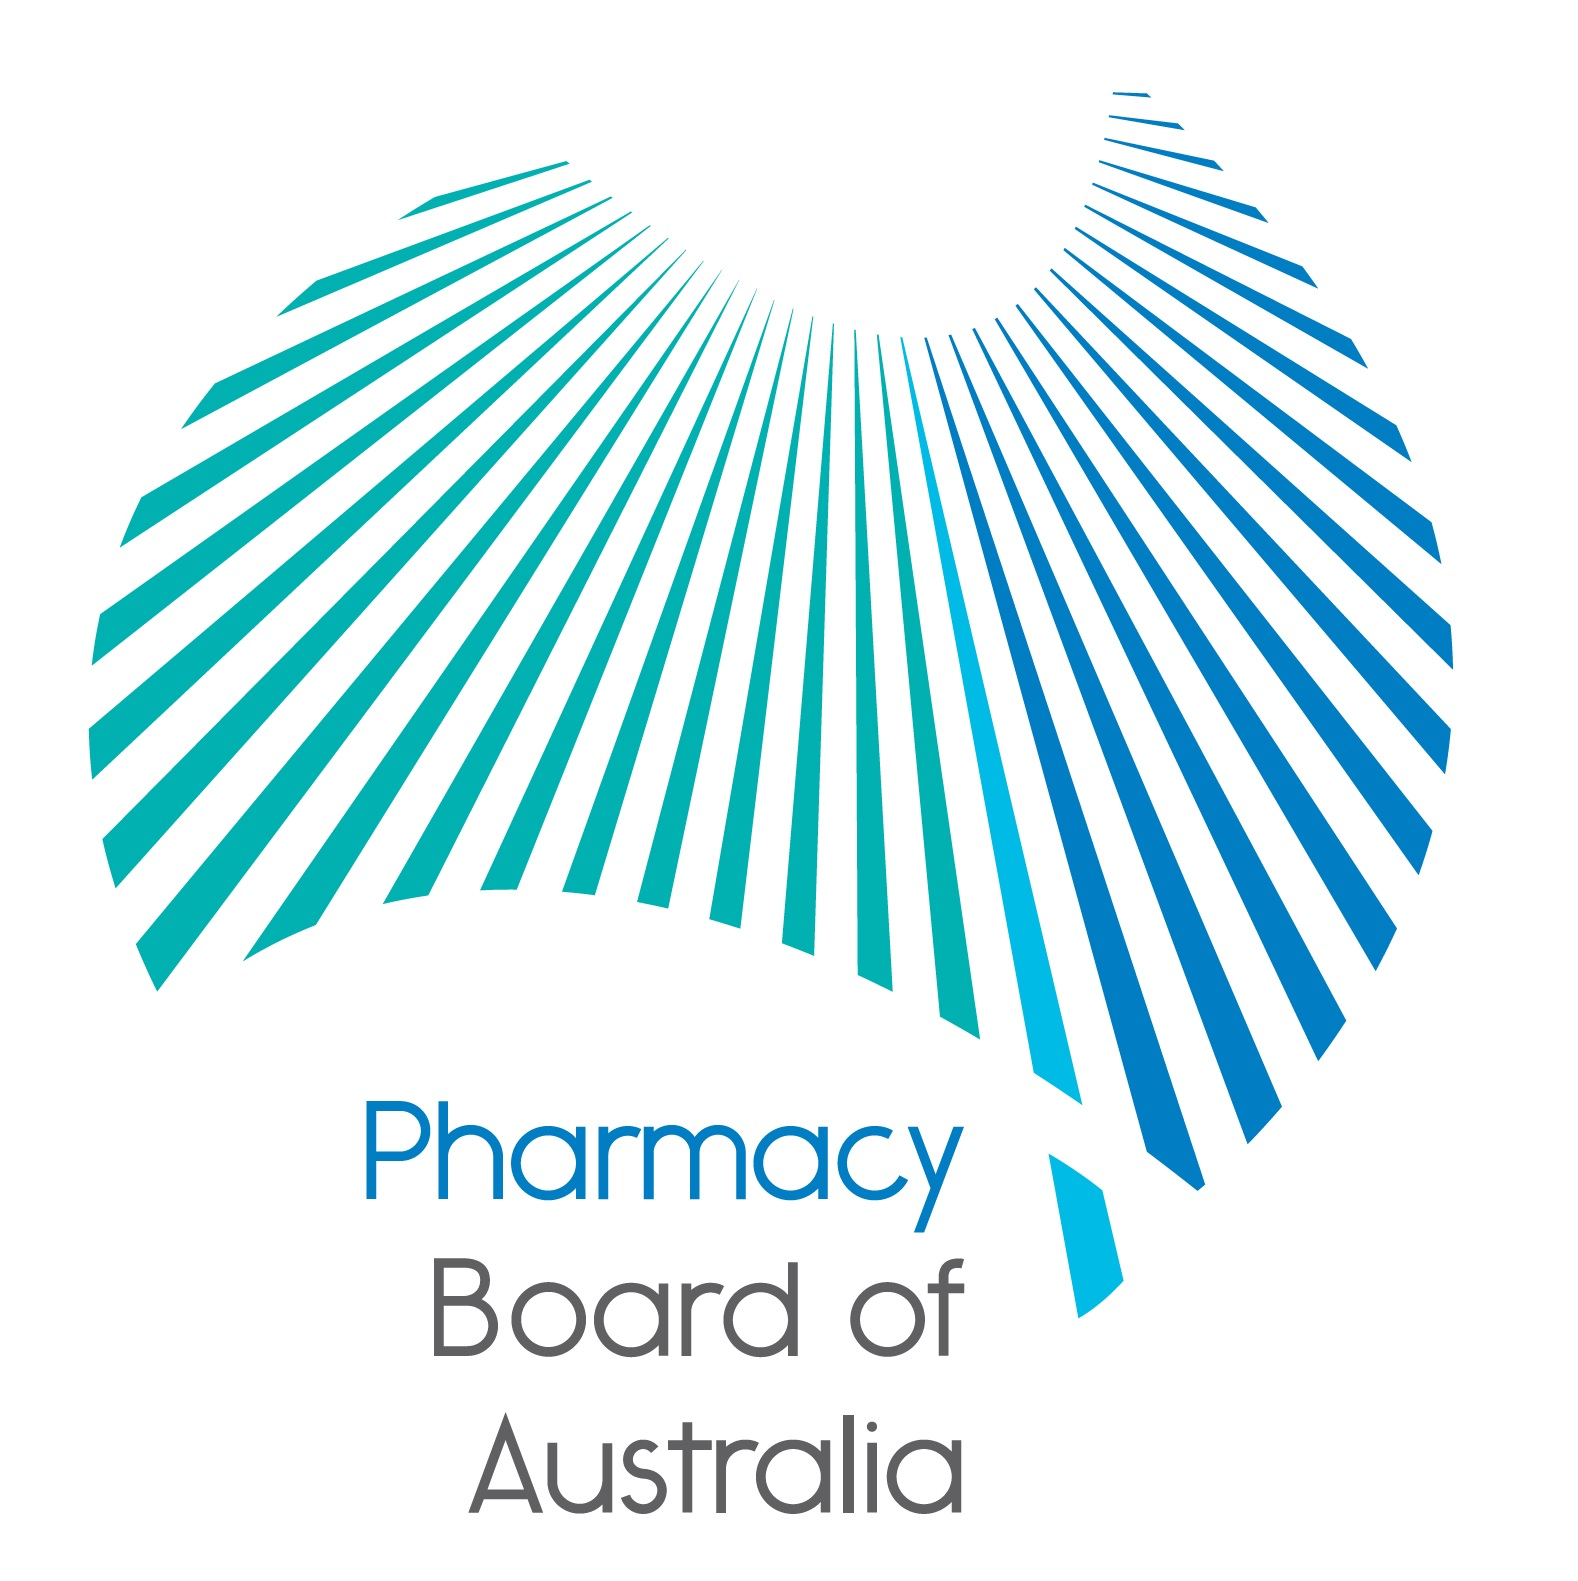 Pharmacy Board of Australia logo